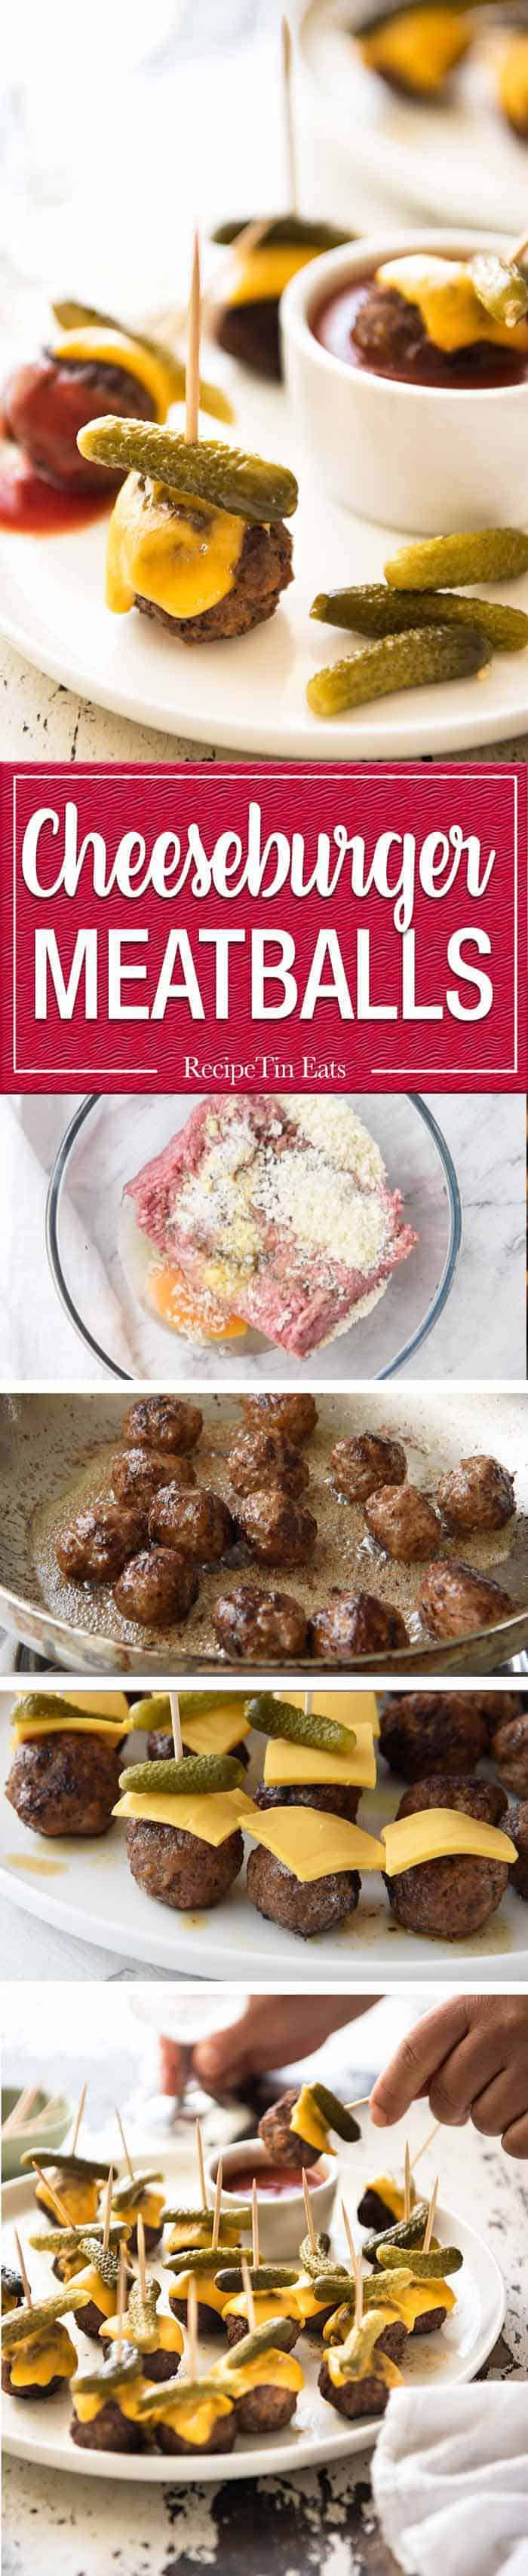 Cheeseburger Party Meatballs - tastes like a cheeseburger, in bite size form! Great for making ahead - fully assemble (inc toothpicks), 90 sec reheat in microwave. www.recipetineats.com